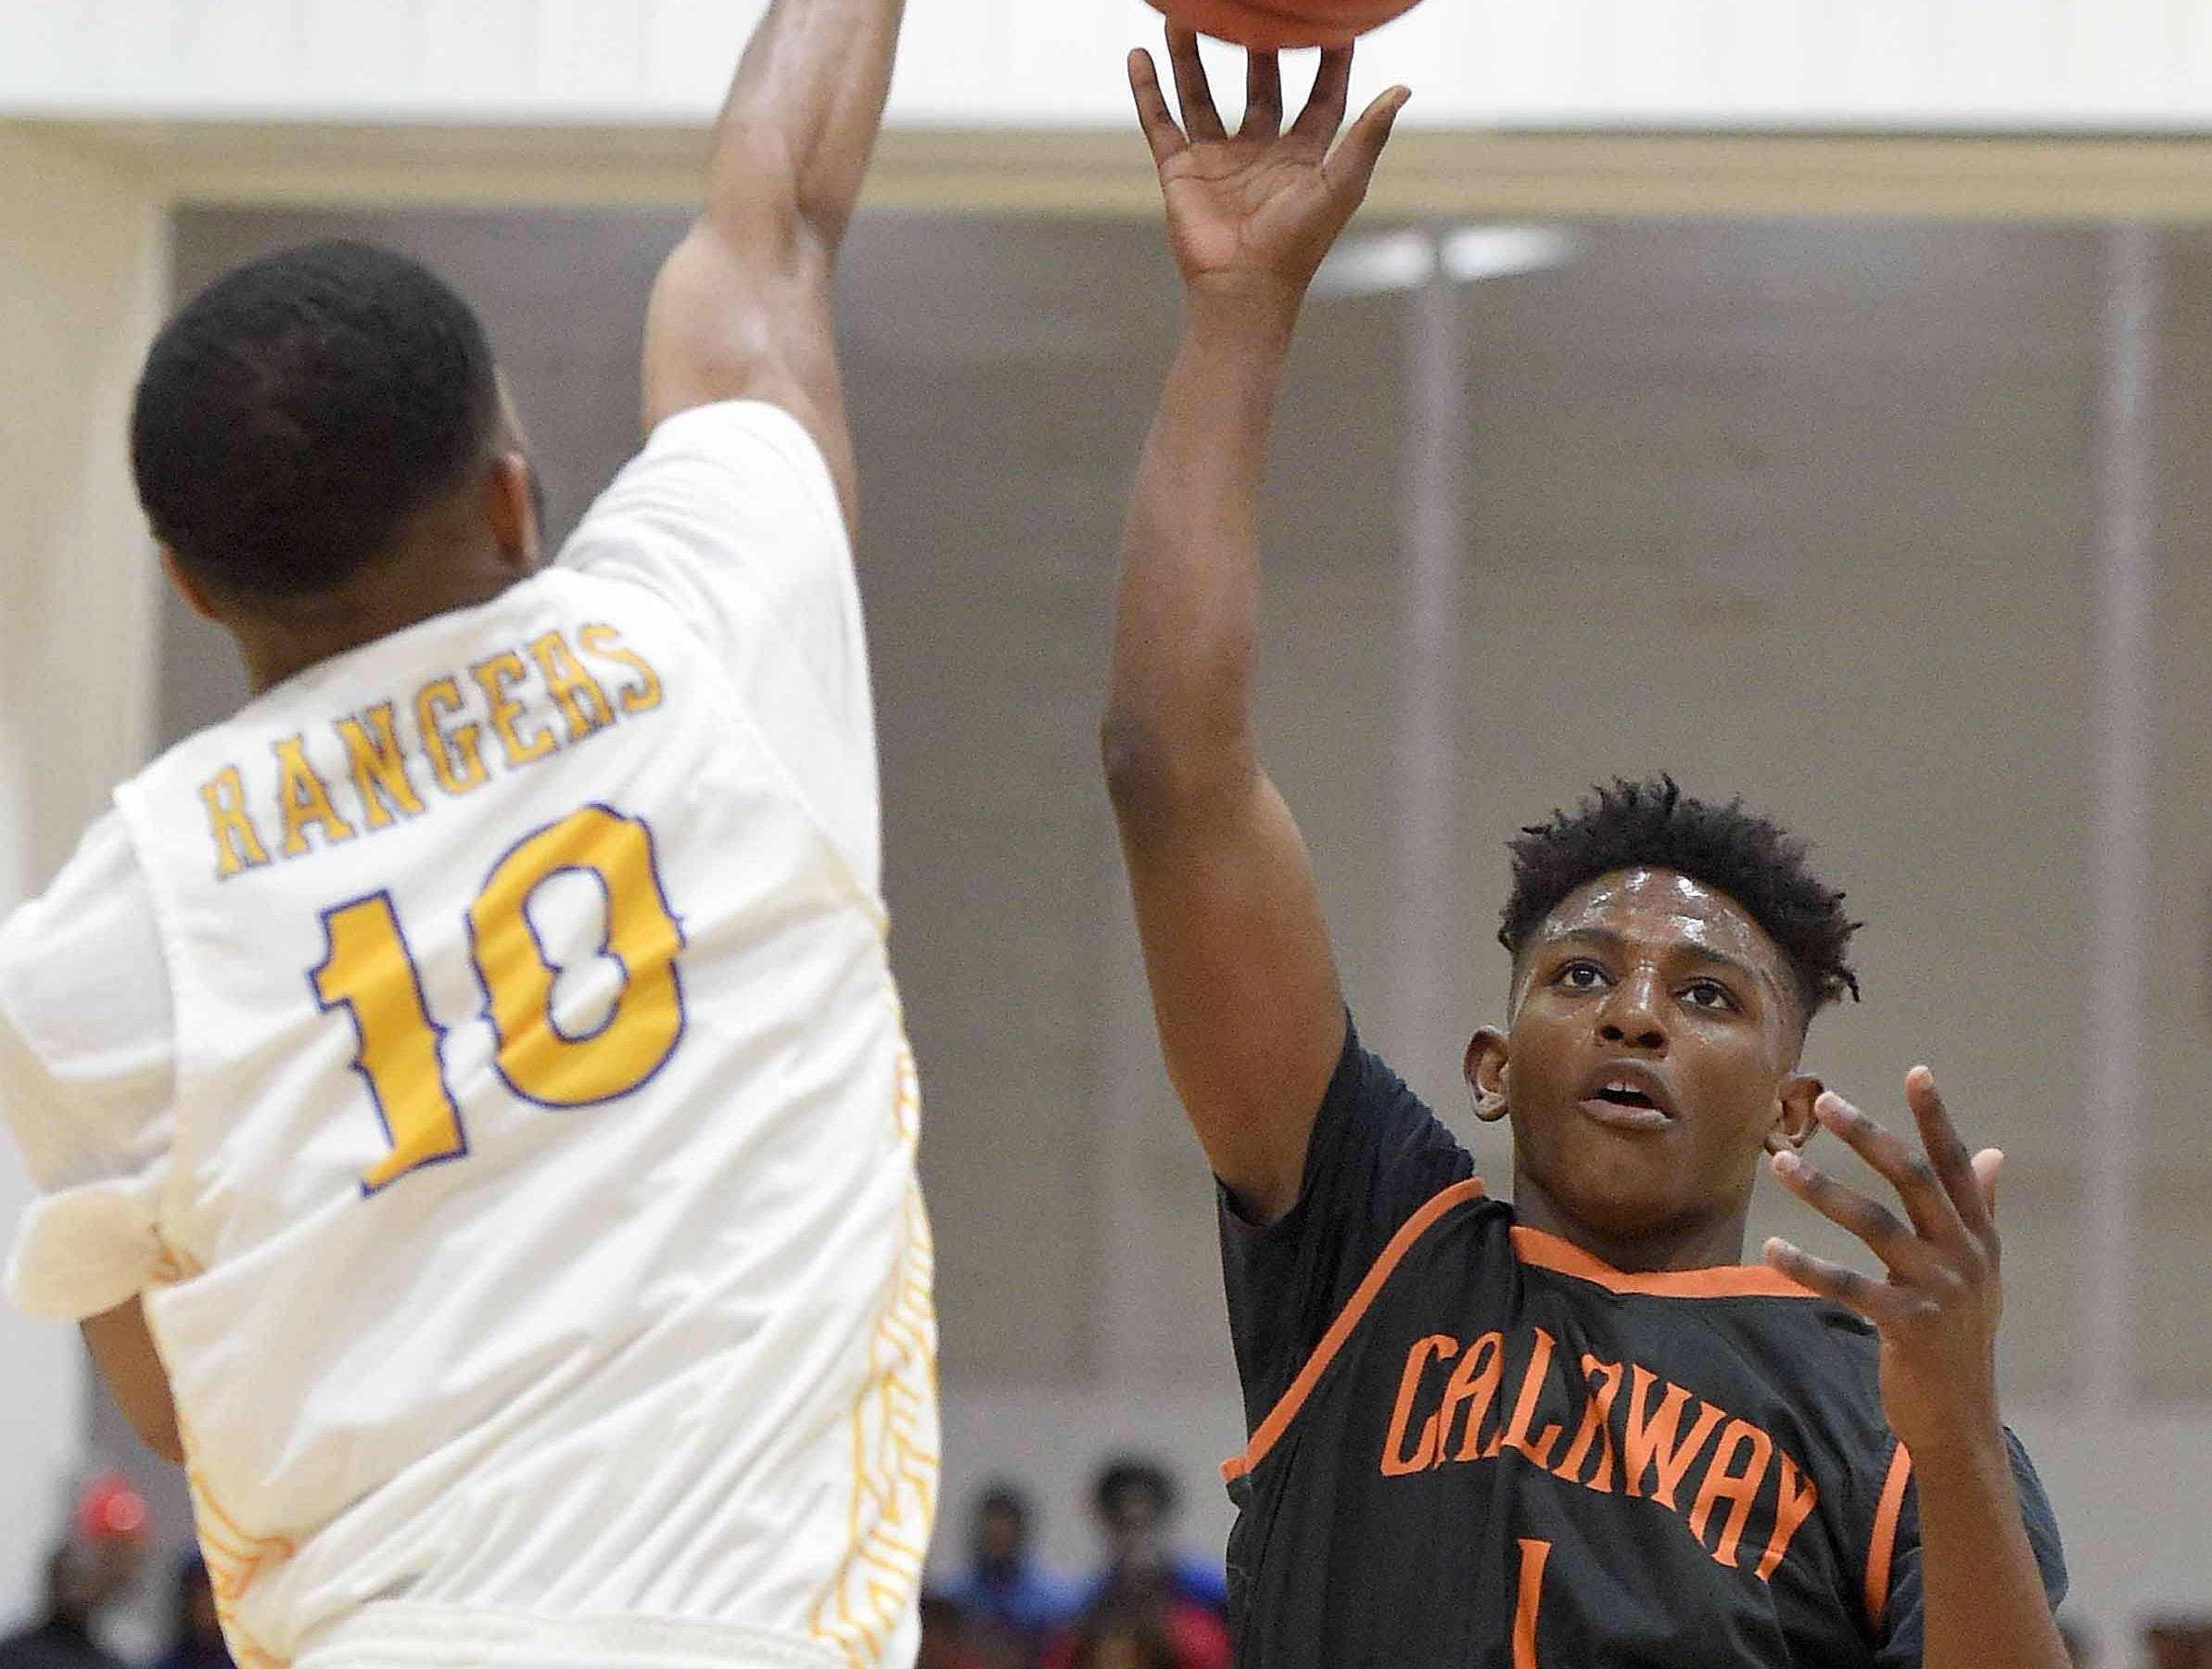 Callaway's Keiveon Hunt (1) puts up a one-handed shot in the lane against Raymond's Kenjuan Davis (10) on Monday, January 21, 2019, at the Rumble in the South high school basketball tournament at St. Andrew's Episcopal School in Ridgeland, Miss.